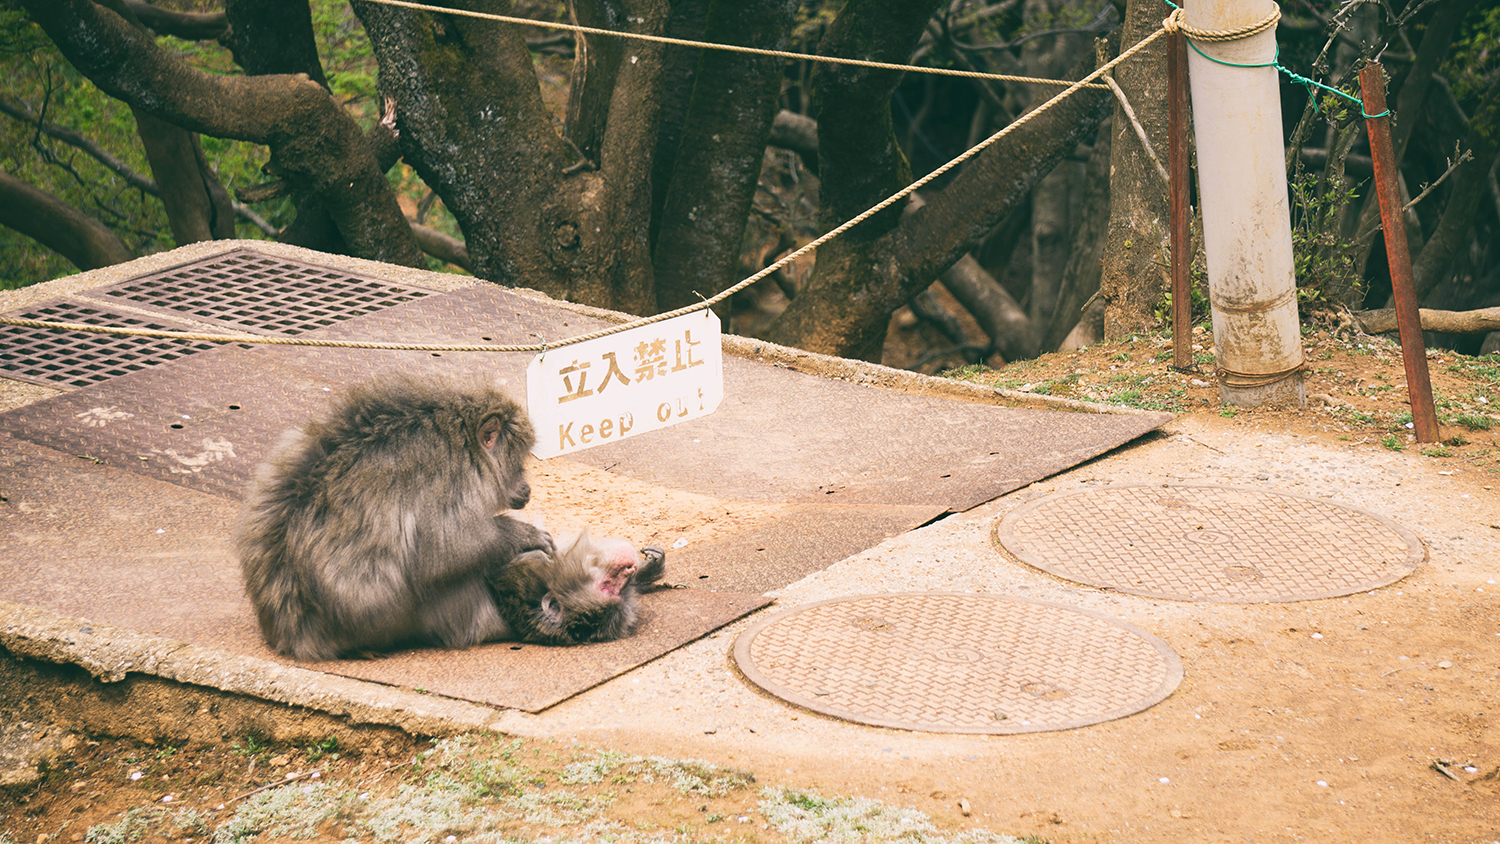 Some areas were off limits to allow the monkeys some peace during breeding season.